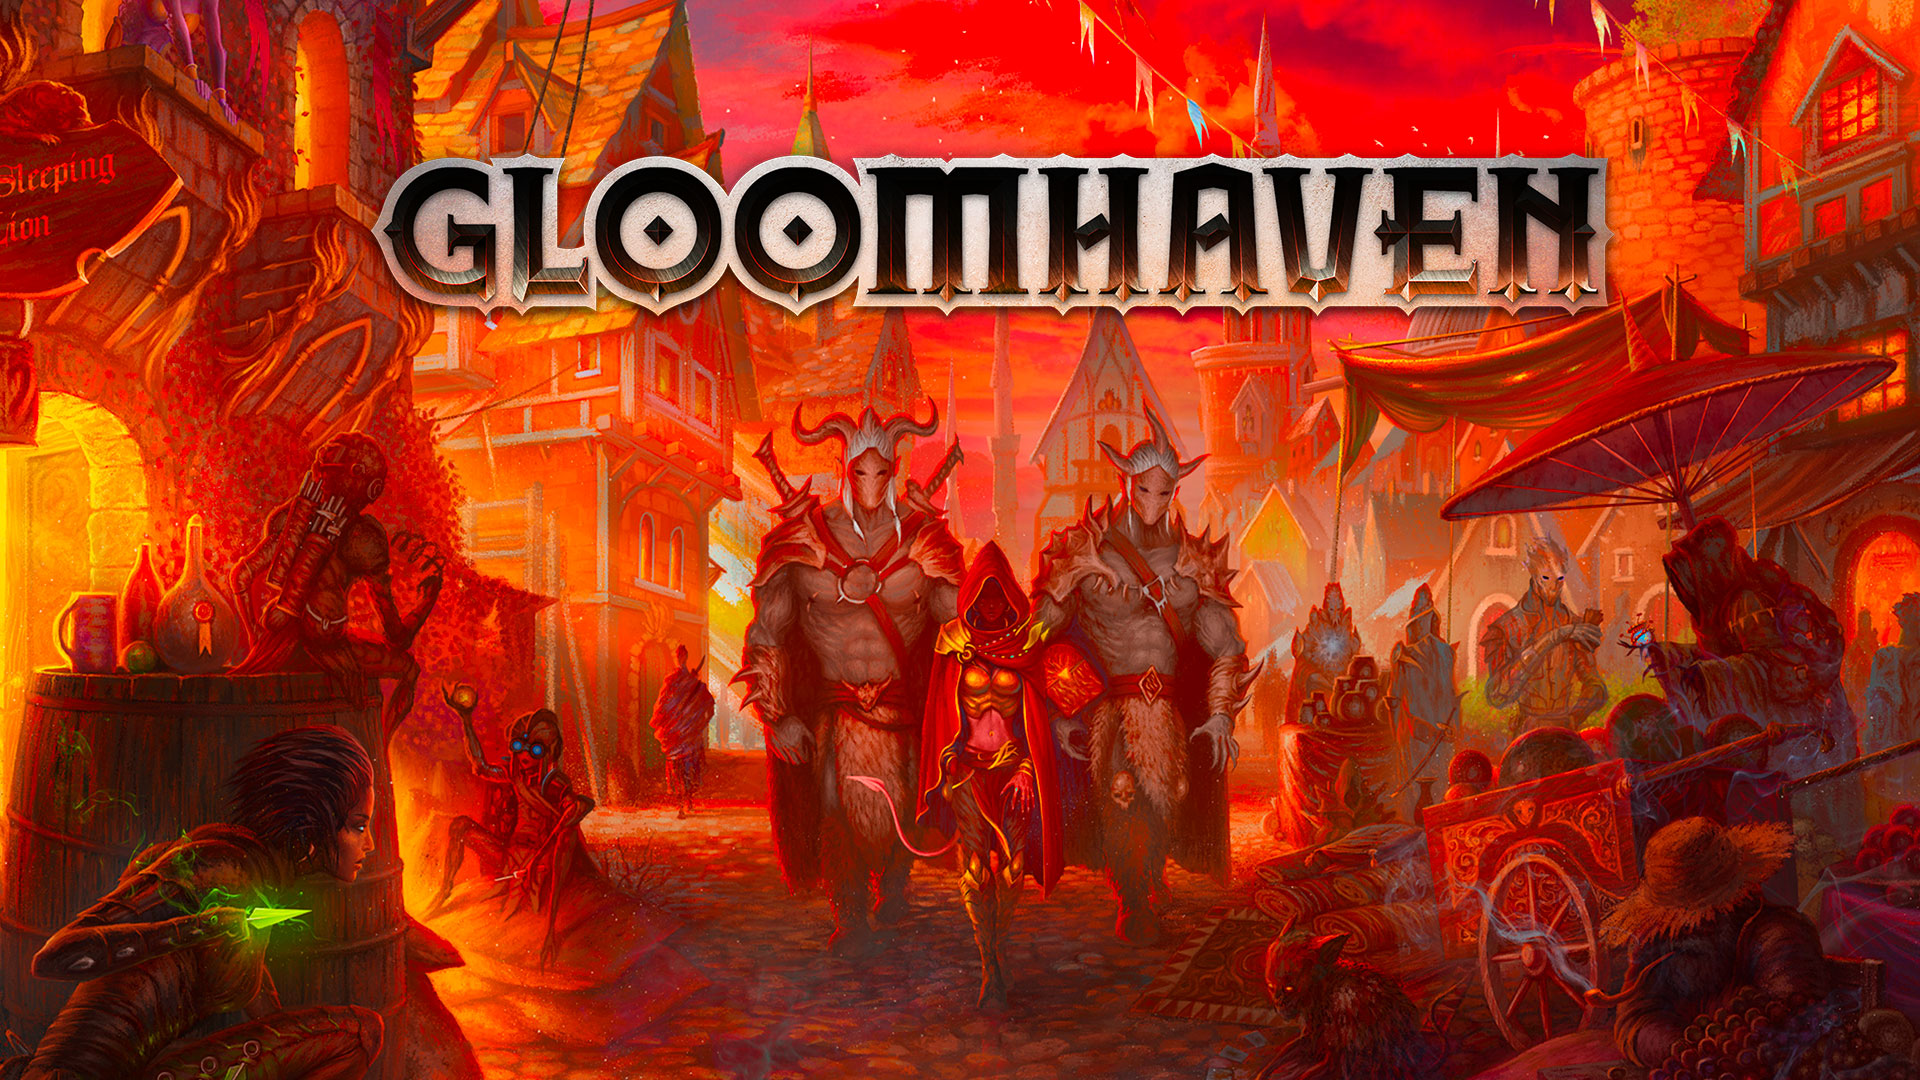 Gloomhaven - digitale Adaption angekündigt